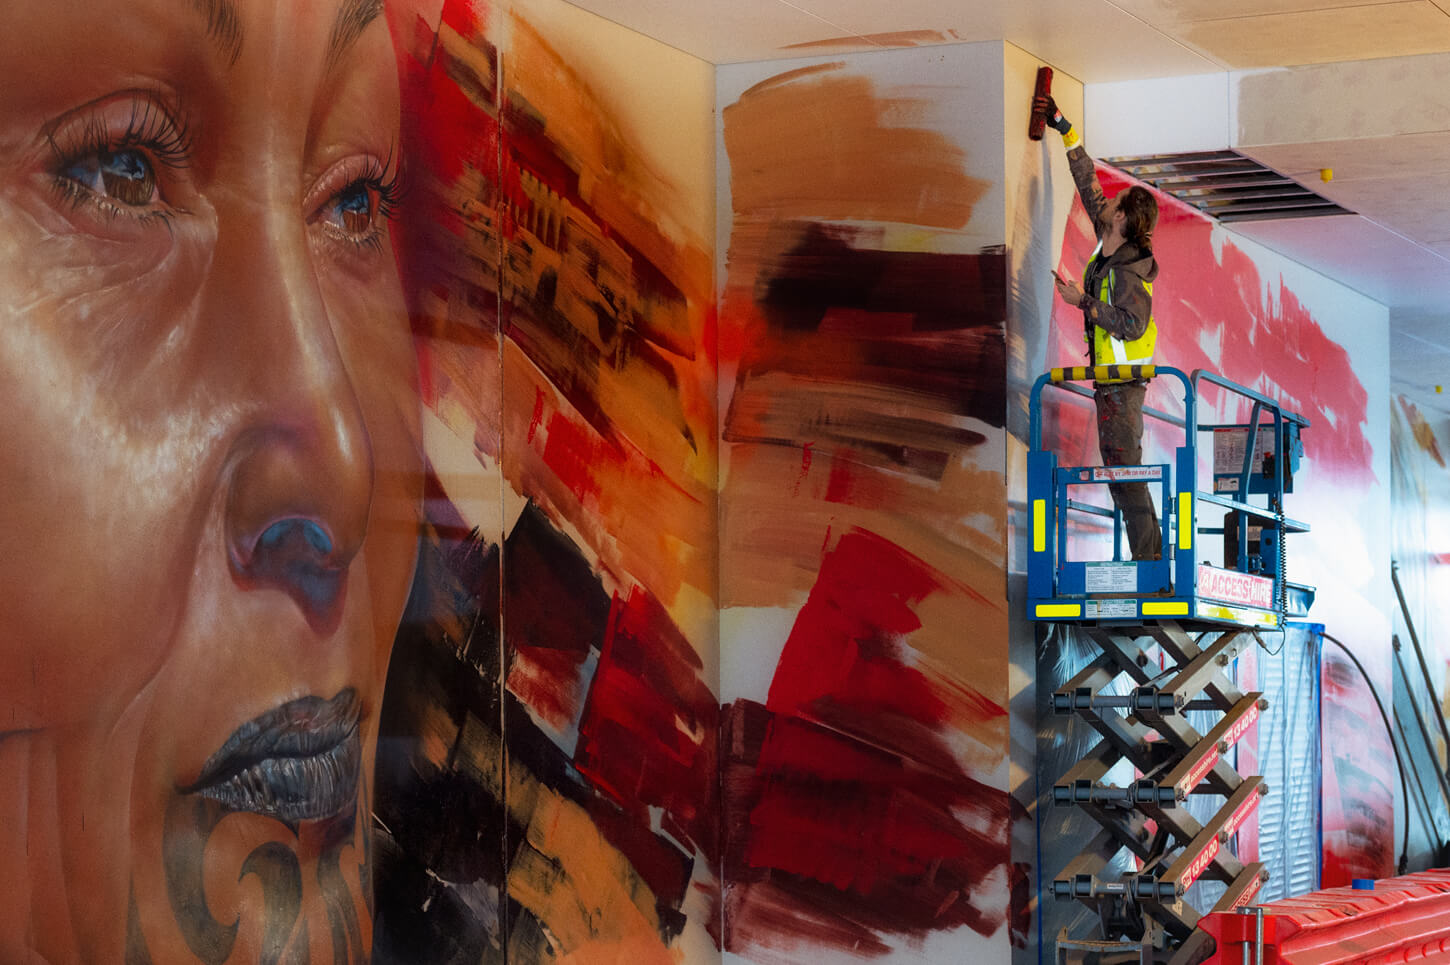 The Adnate to open in Perth : Get ready for the worlds tallest Murals